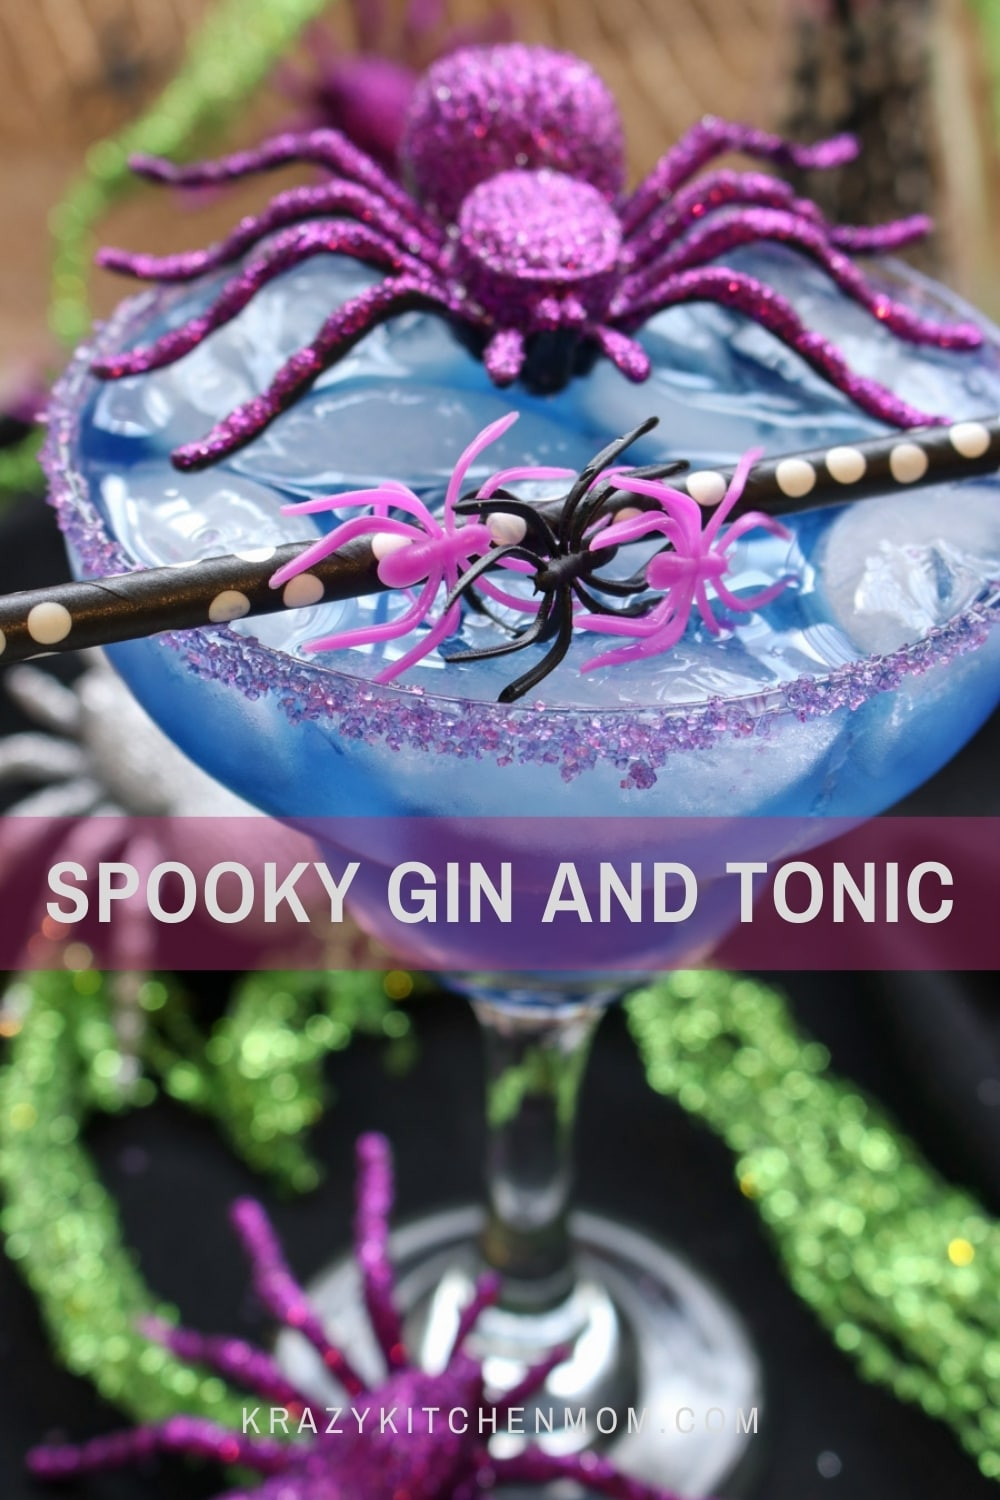 My gin and tonic cocktail has its own Halloween costume this year. This cocktail is balanced with a touch of sweetness and citrus notes.  via @krazykitchenmom